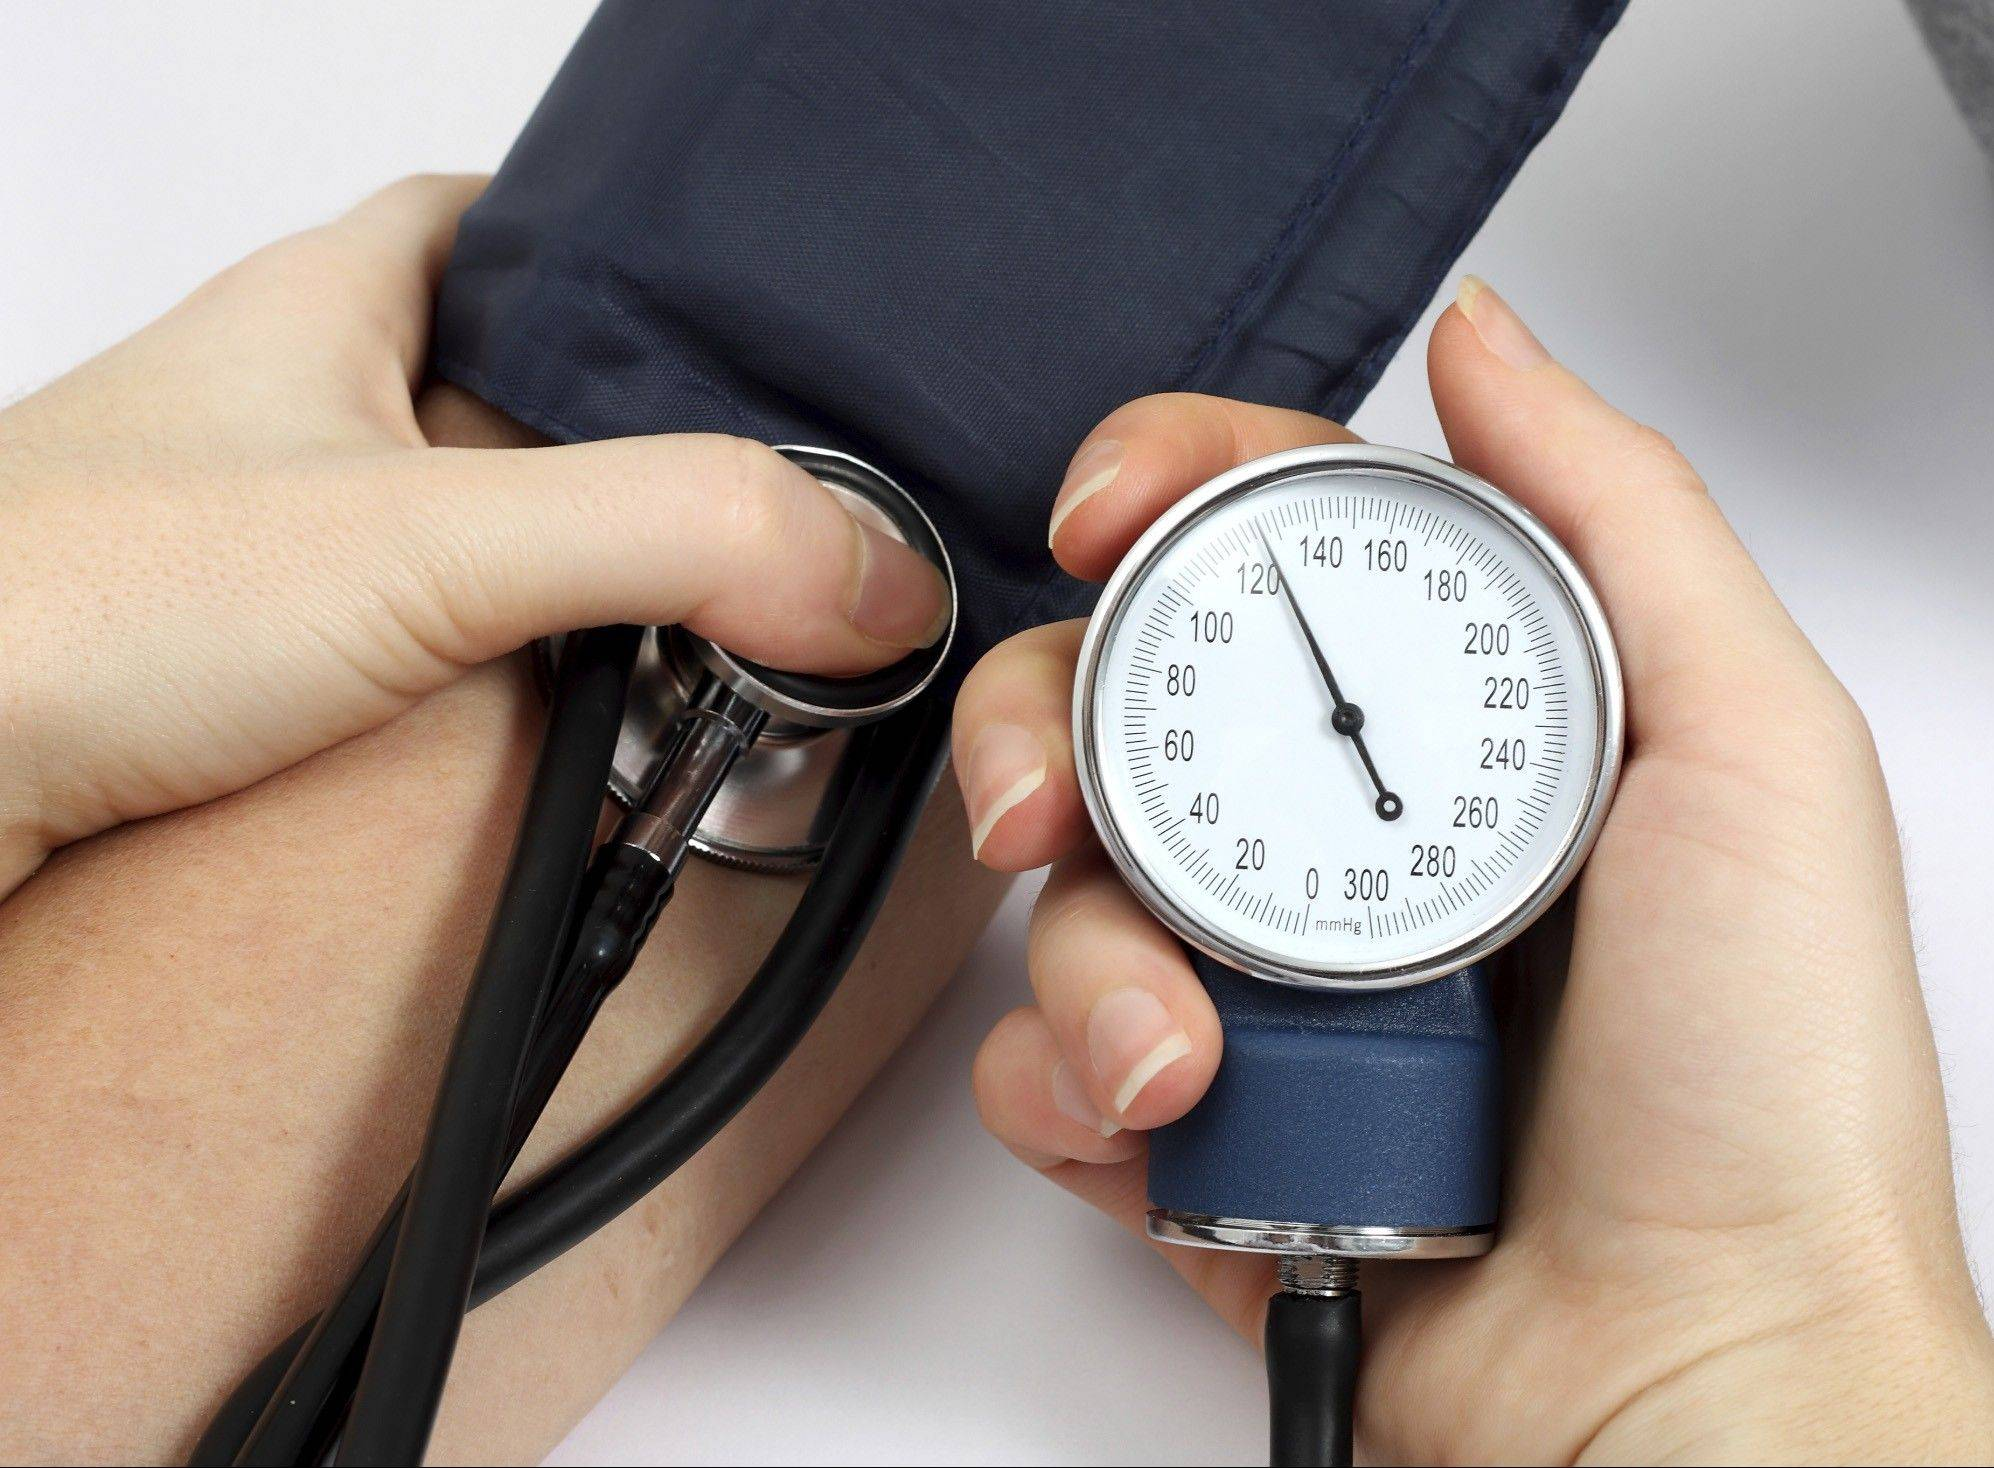 High blood pressure is a majoring risk factor for strokes and heart disease.